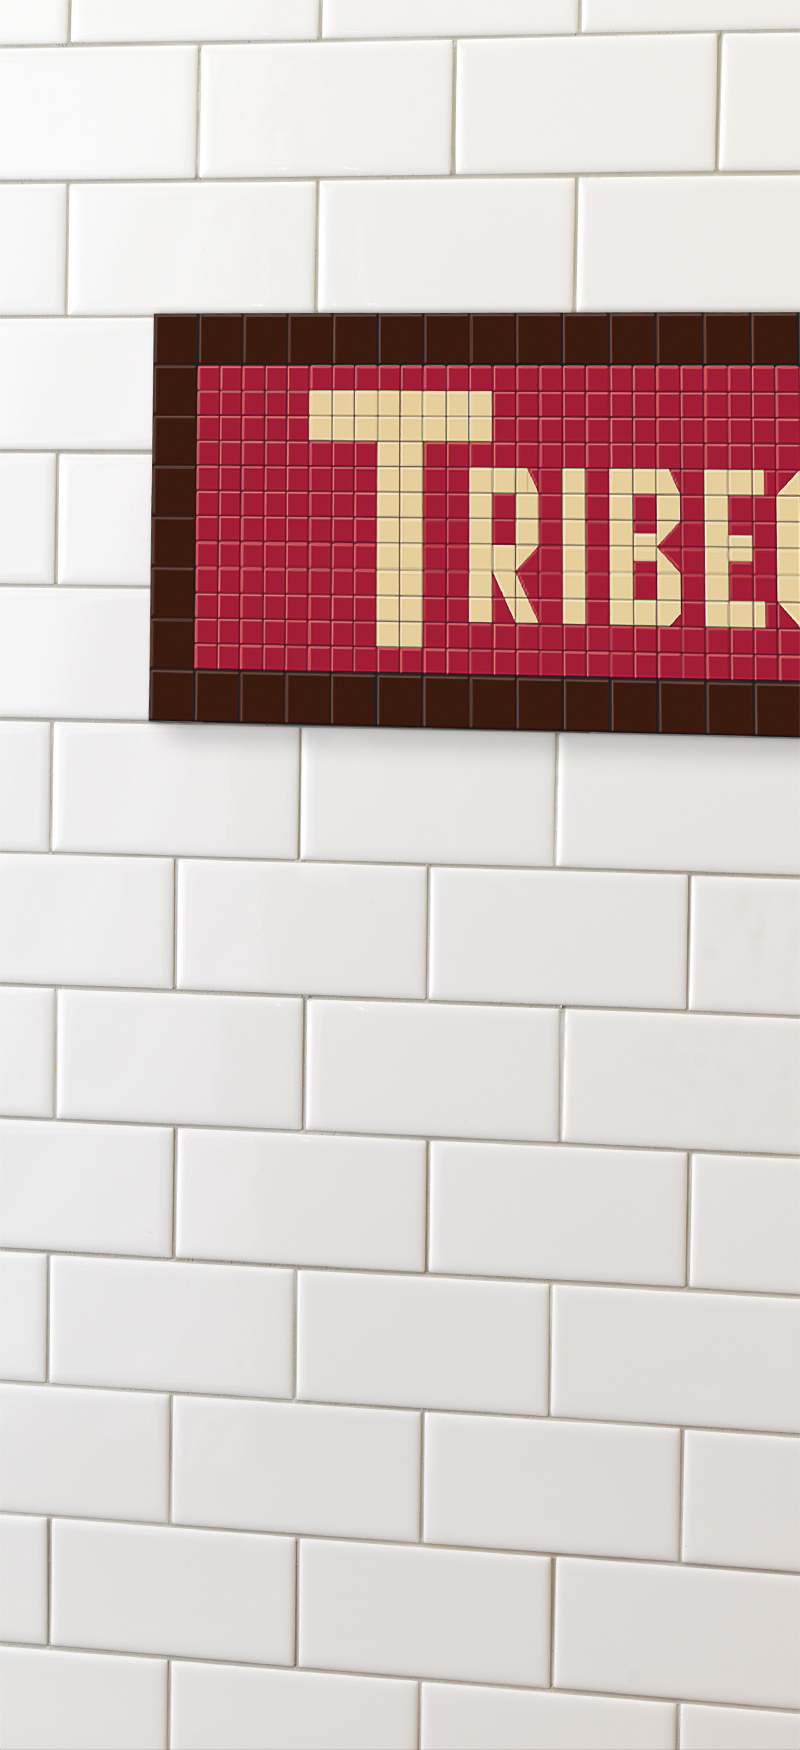 Tribeca Oven Tile Image by Blue Flame Thinking